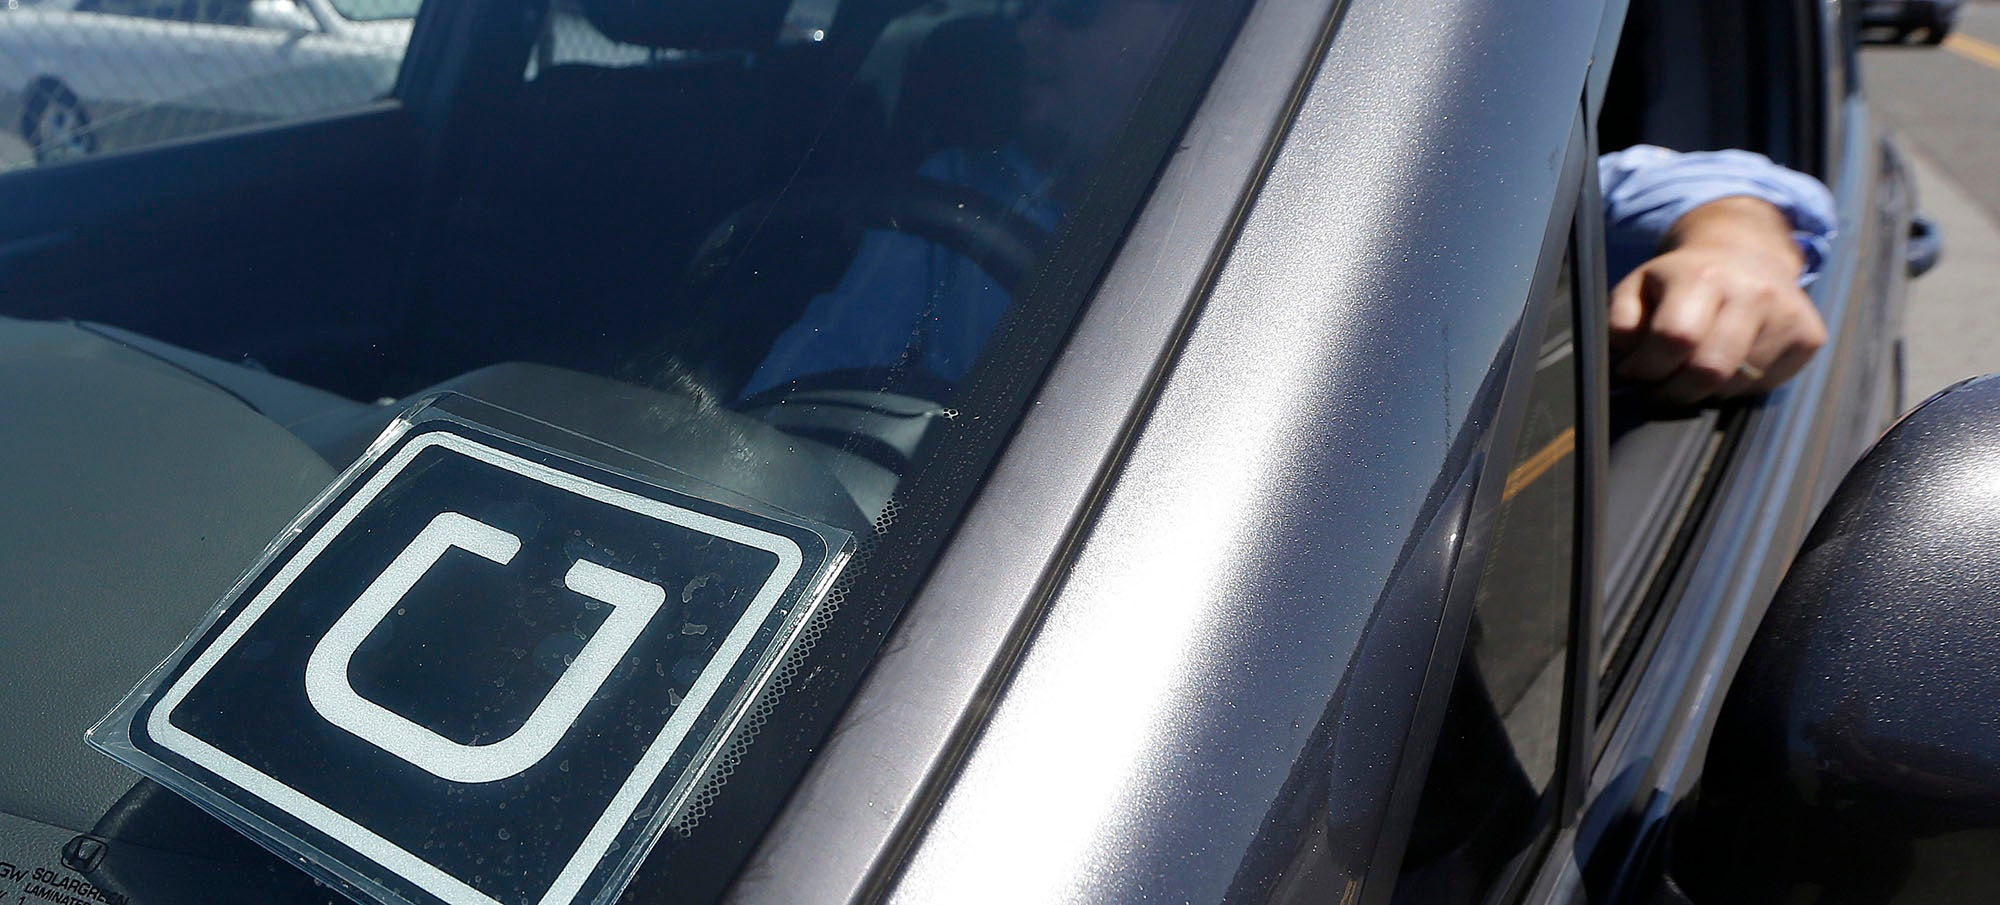 Uber's Been Testing a (Secret) Emergency Phone Line: 800-353-UBER